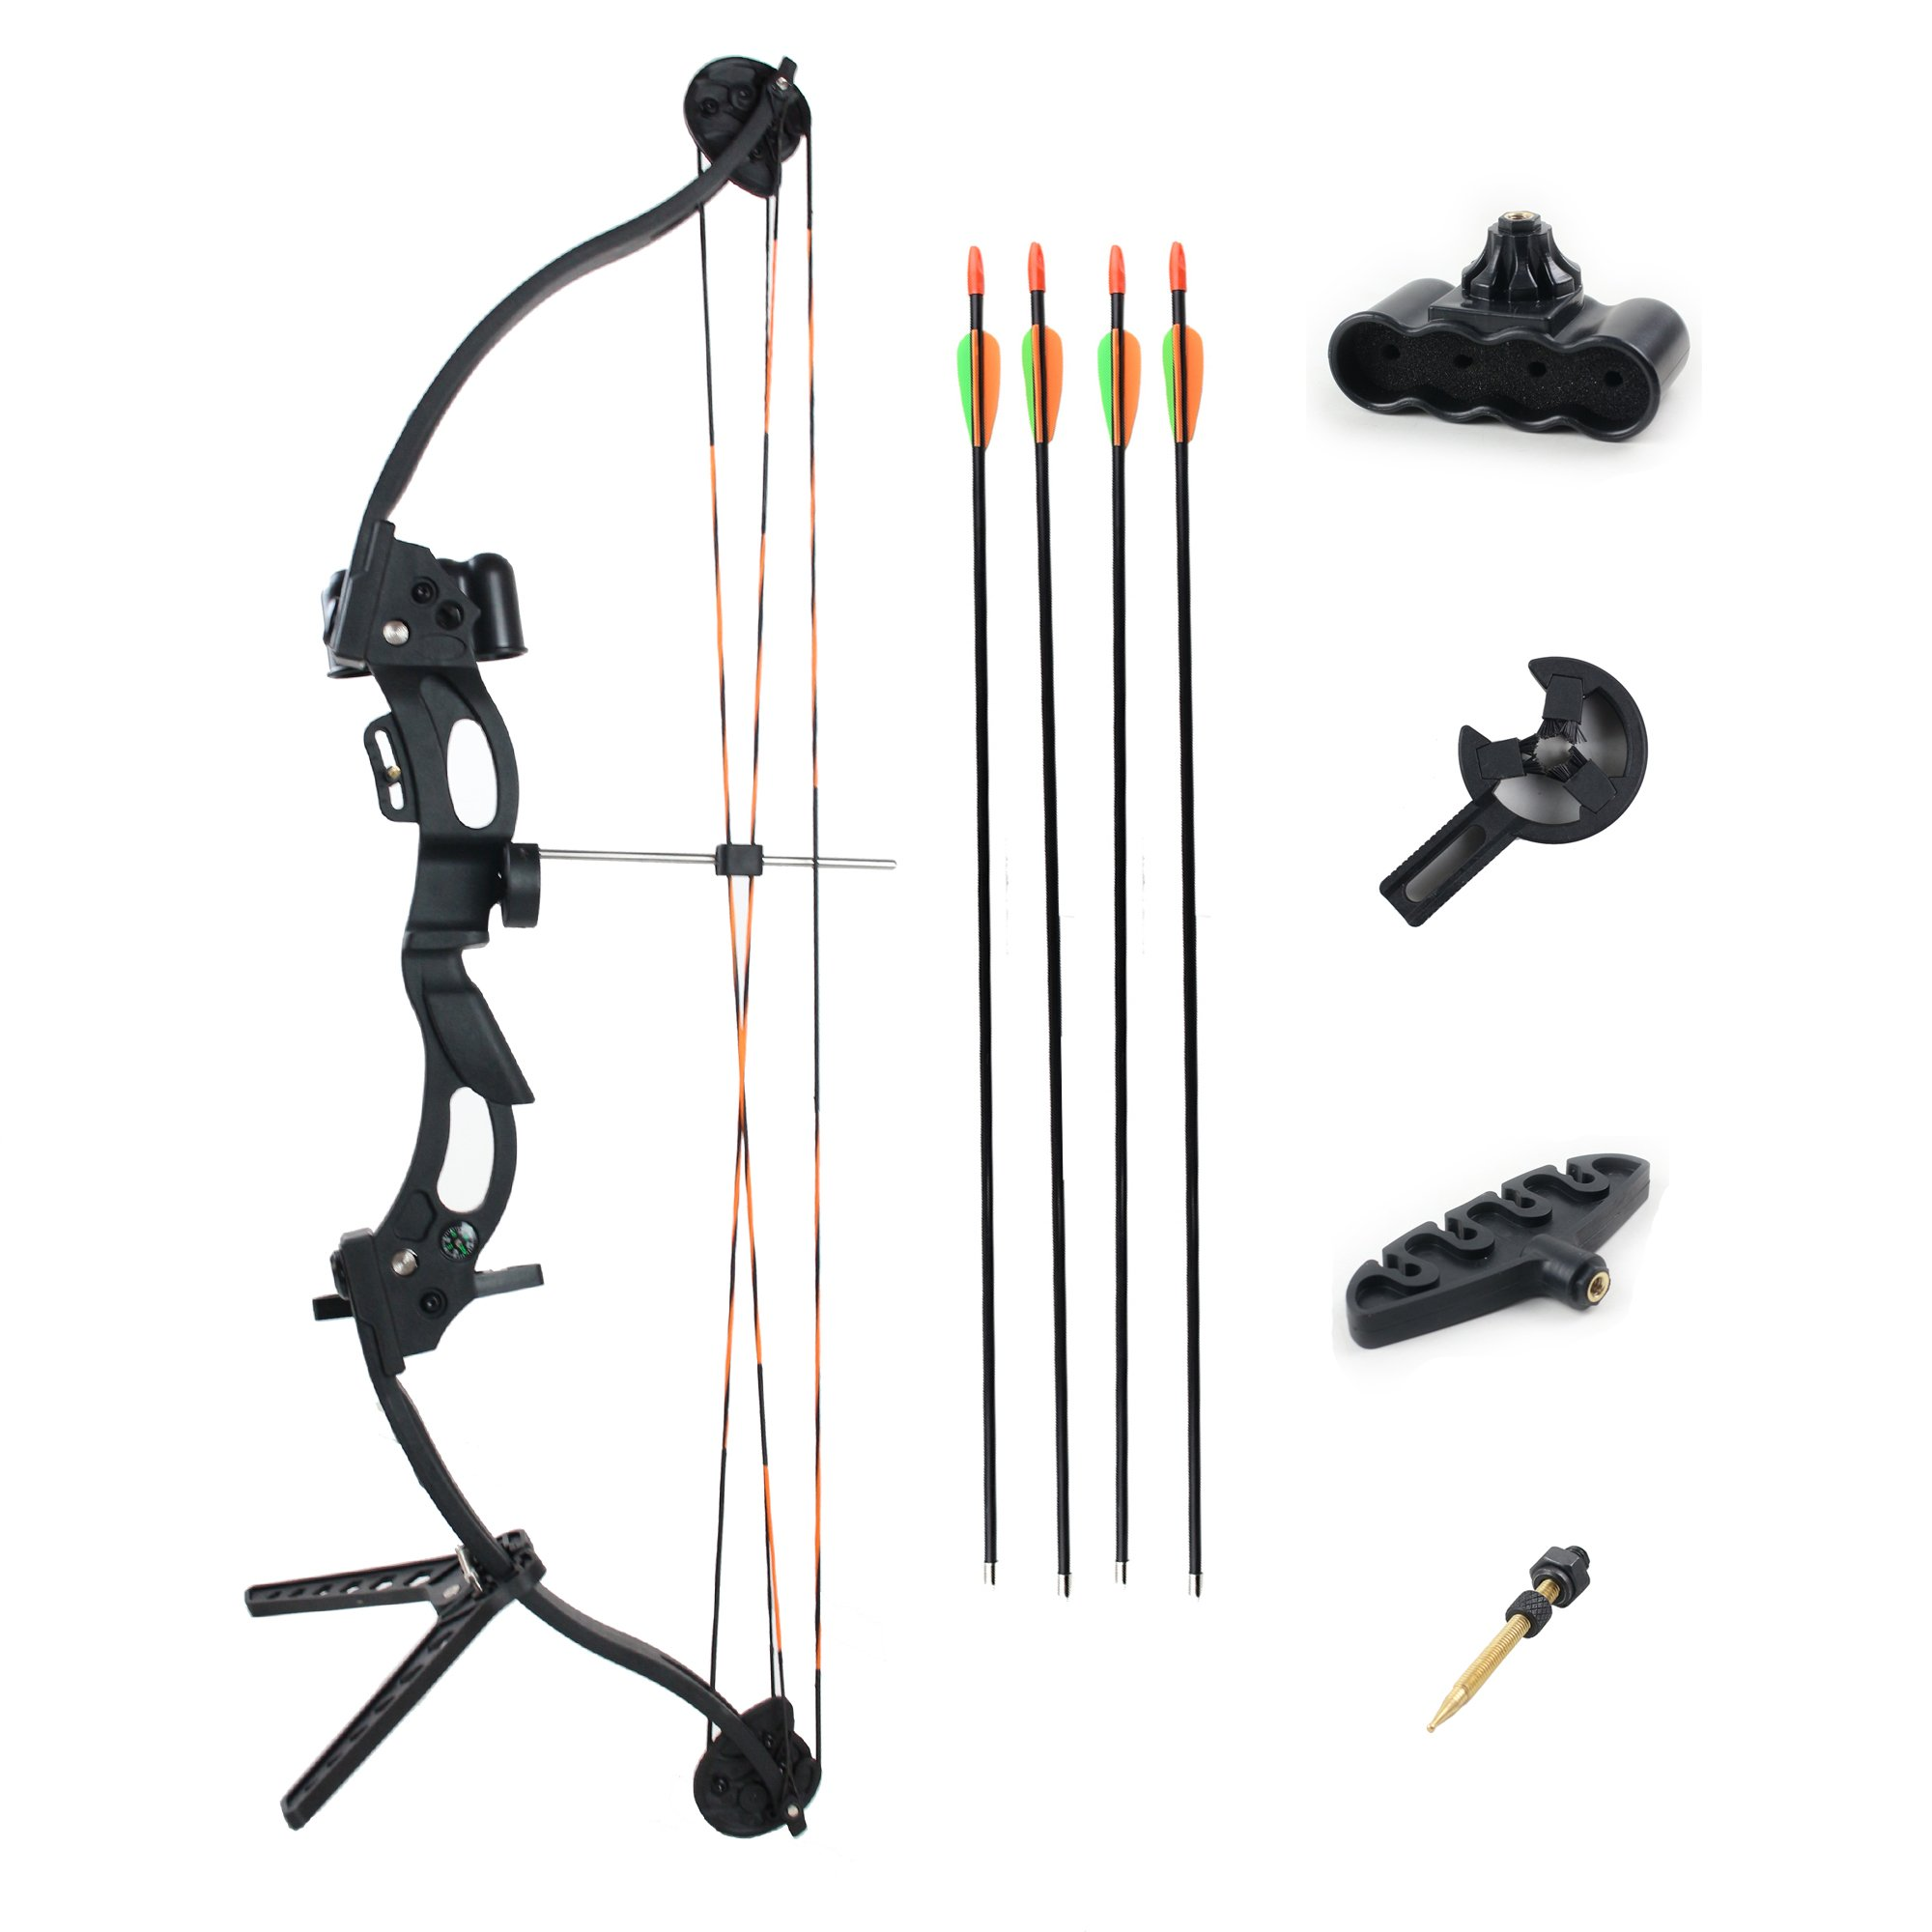 "SinoArt Youth Compound Bow 25.2""Draw 20LB - 30LB Draw Weight Right Hand Outdoor Hunting Bows&Arrows Archery Set for Teenager"